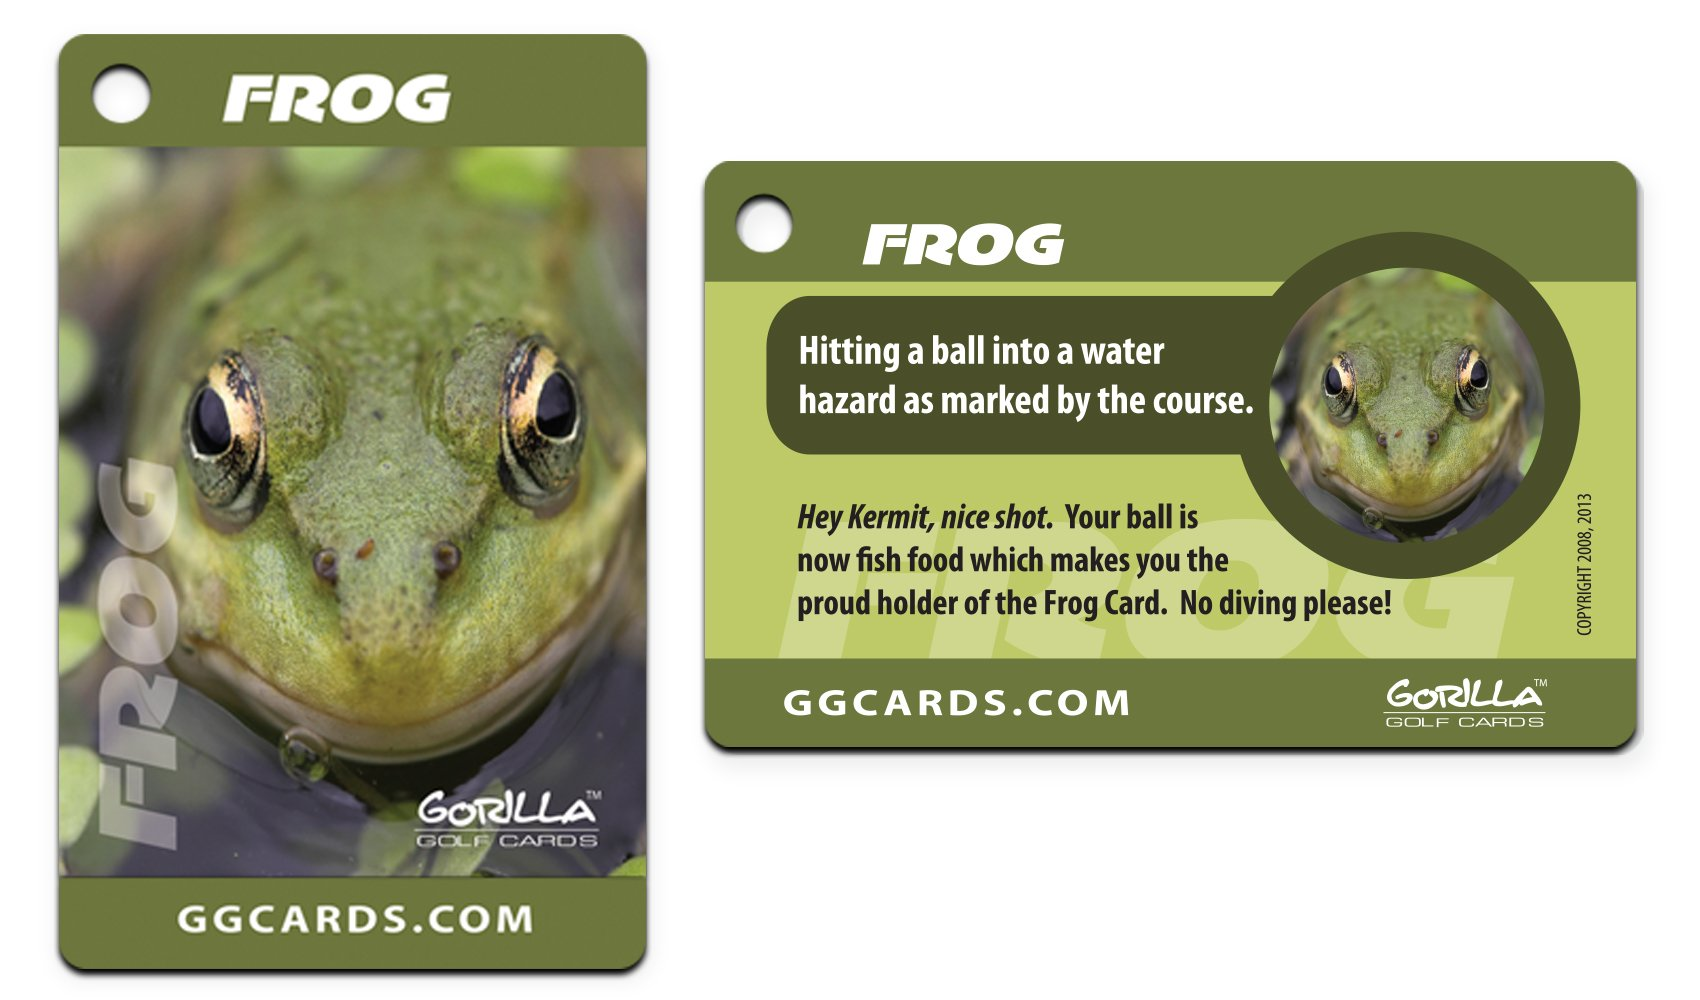 Gorilla Golf Cards : The On-Course Golf Betting Game by Gorilla Golf Cards (Image #4)